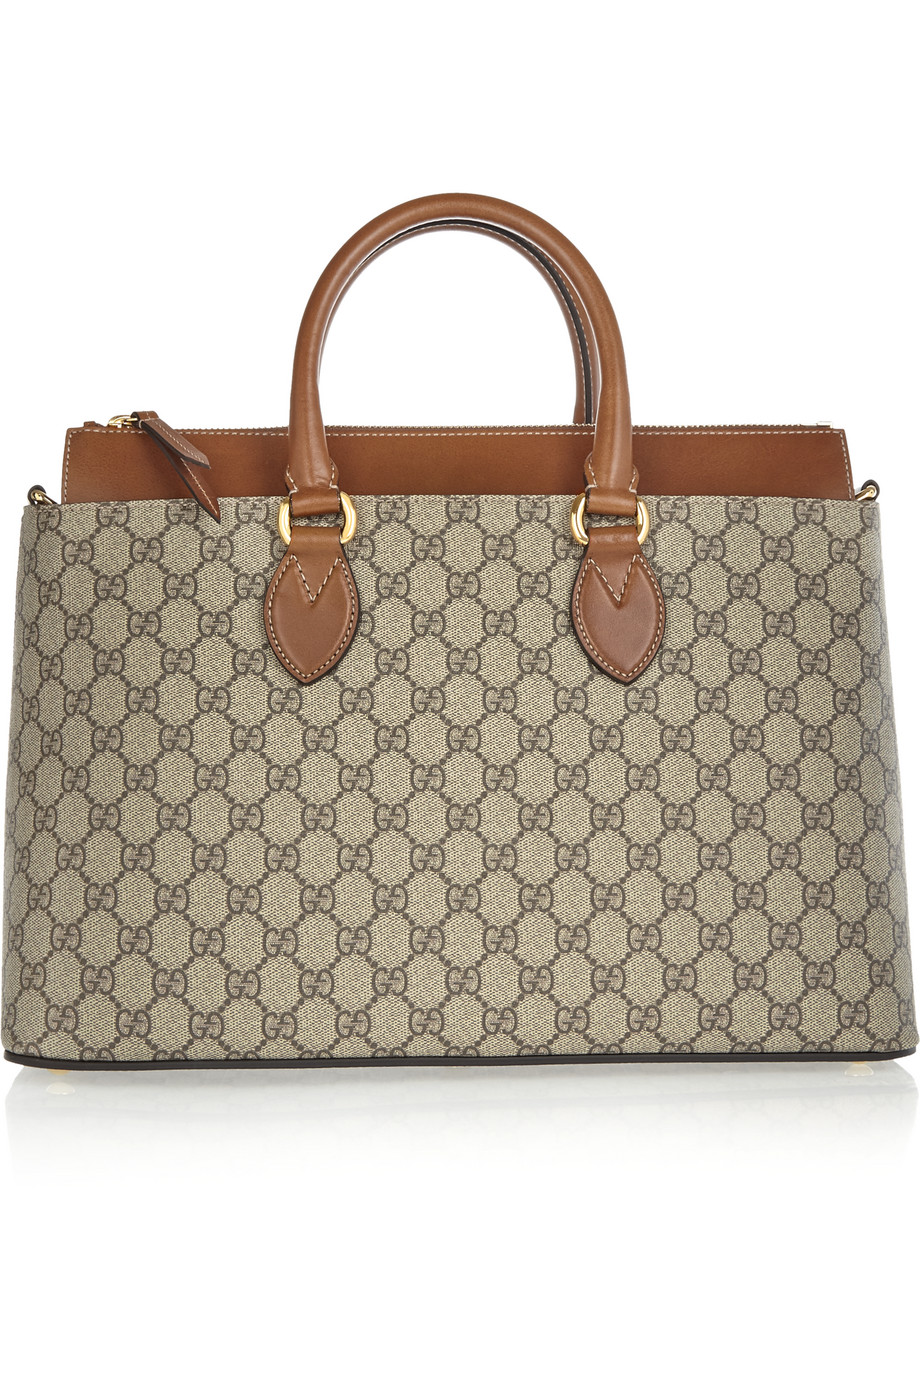 Gucci Linea A Medium Leather-Trimmed Coated Canvas Tote, Beige, Women's